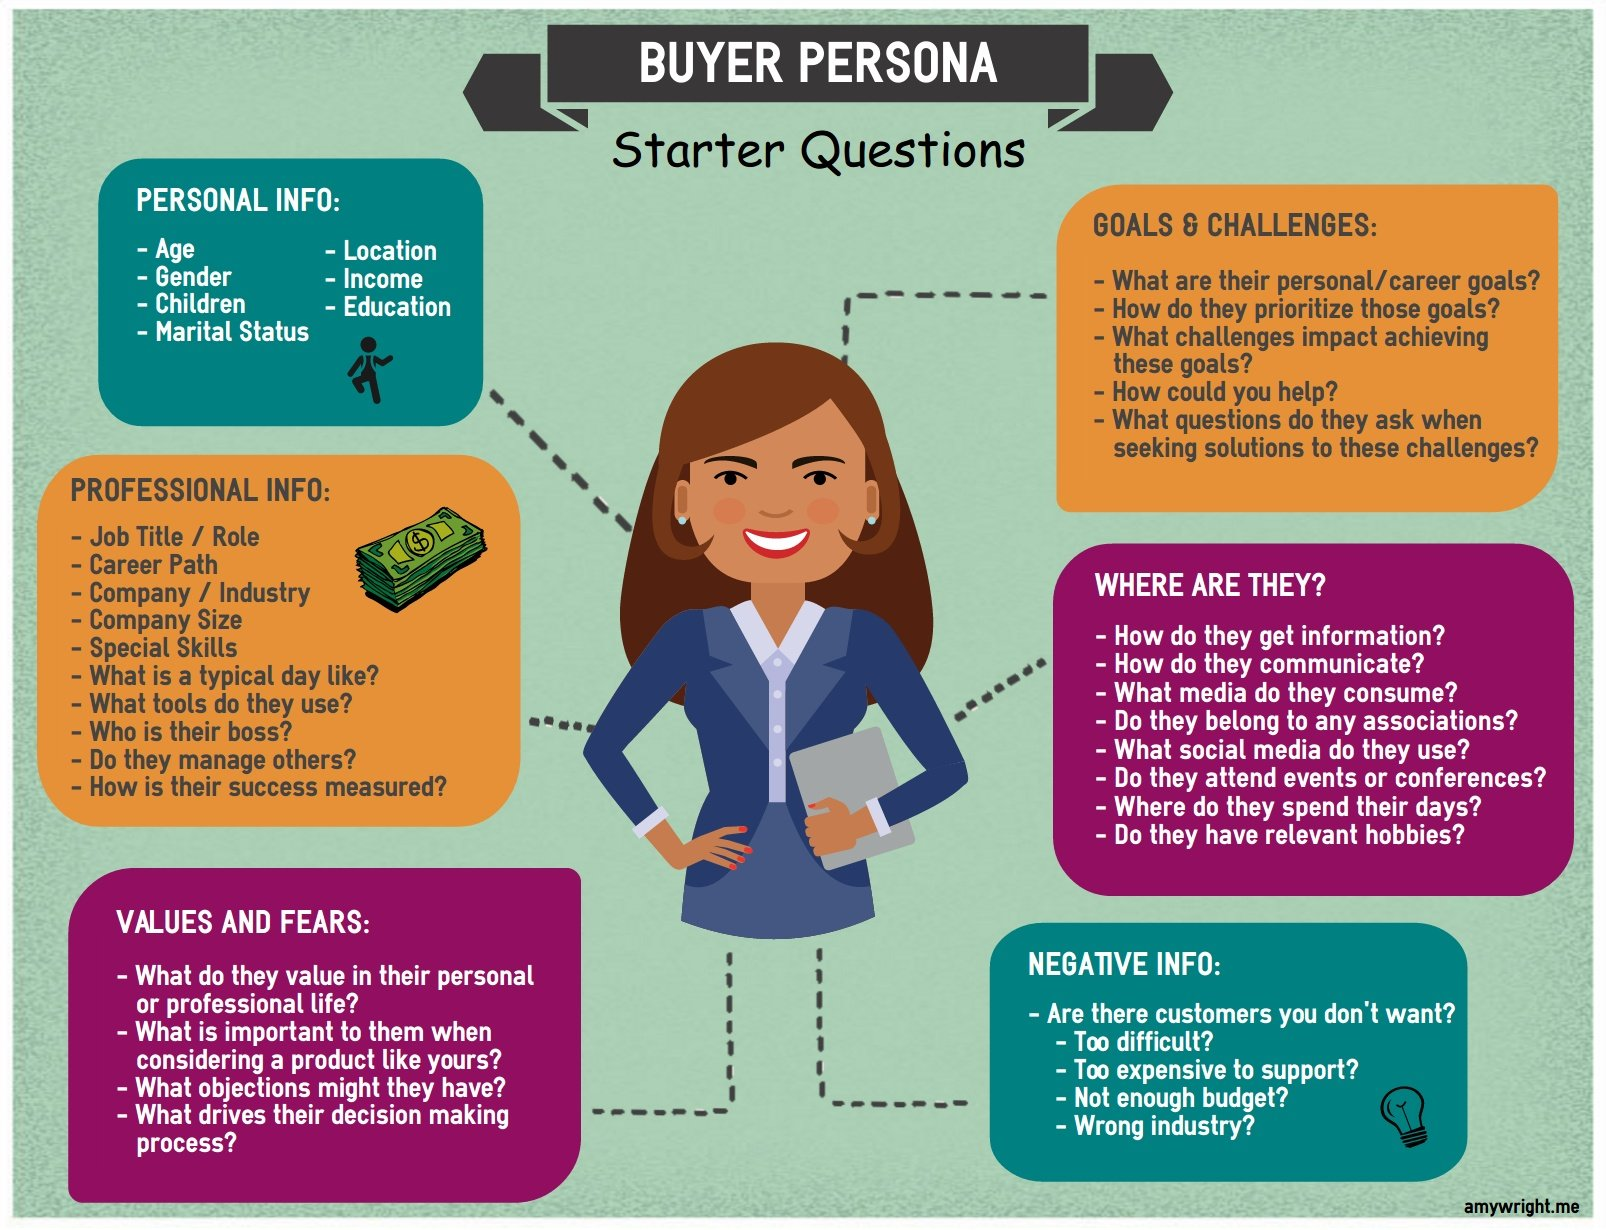 What is a 'Buyer Persona' and Why is it Important?